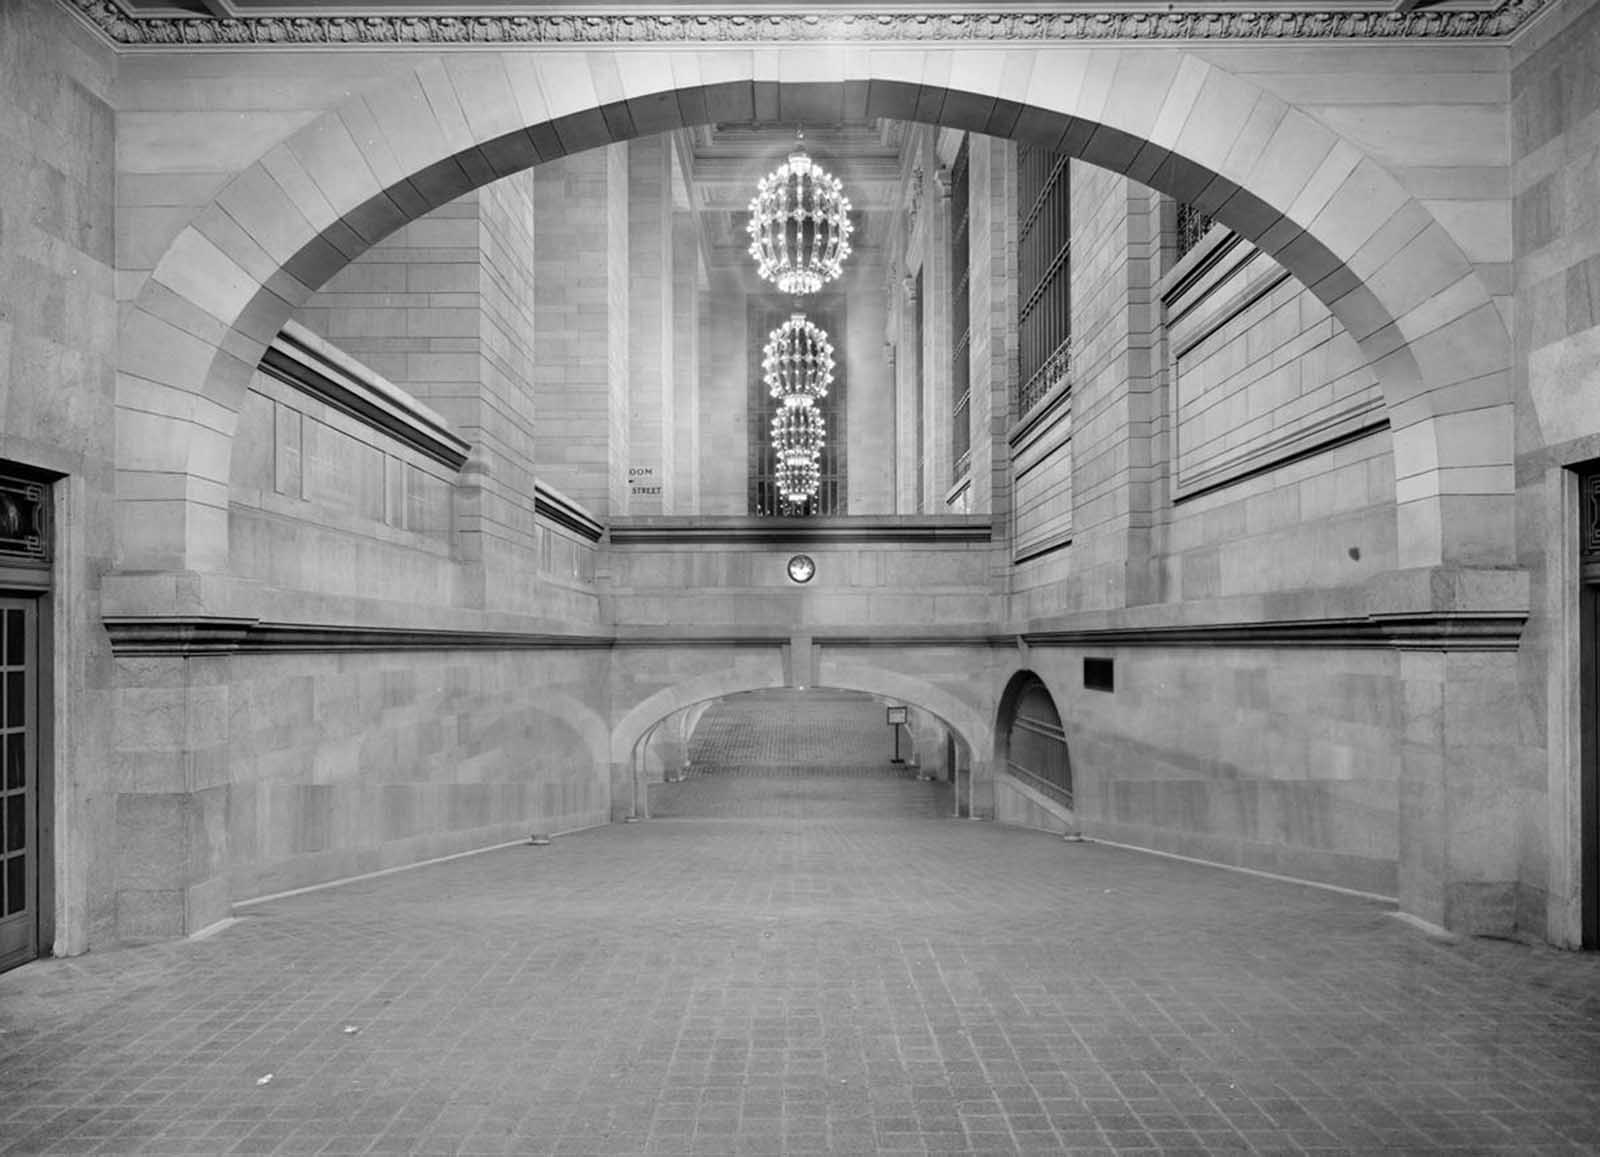 Incline from subway to suburban concourse, Grand Central Terminal, New York, ca 1912.